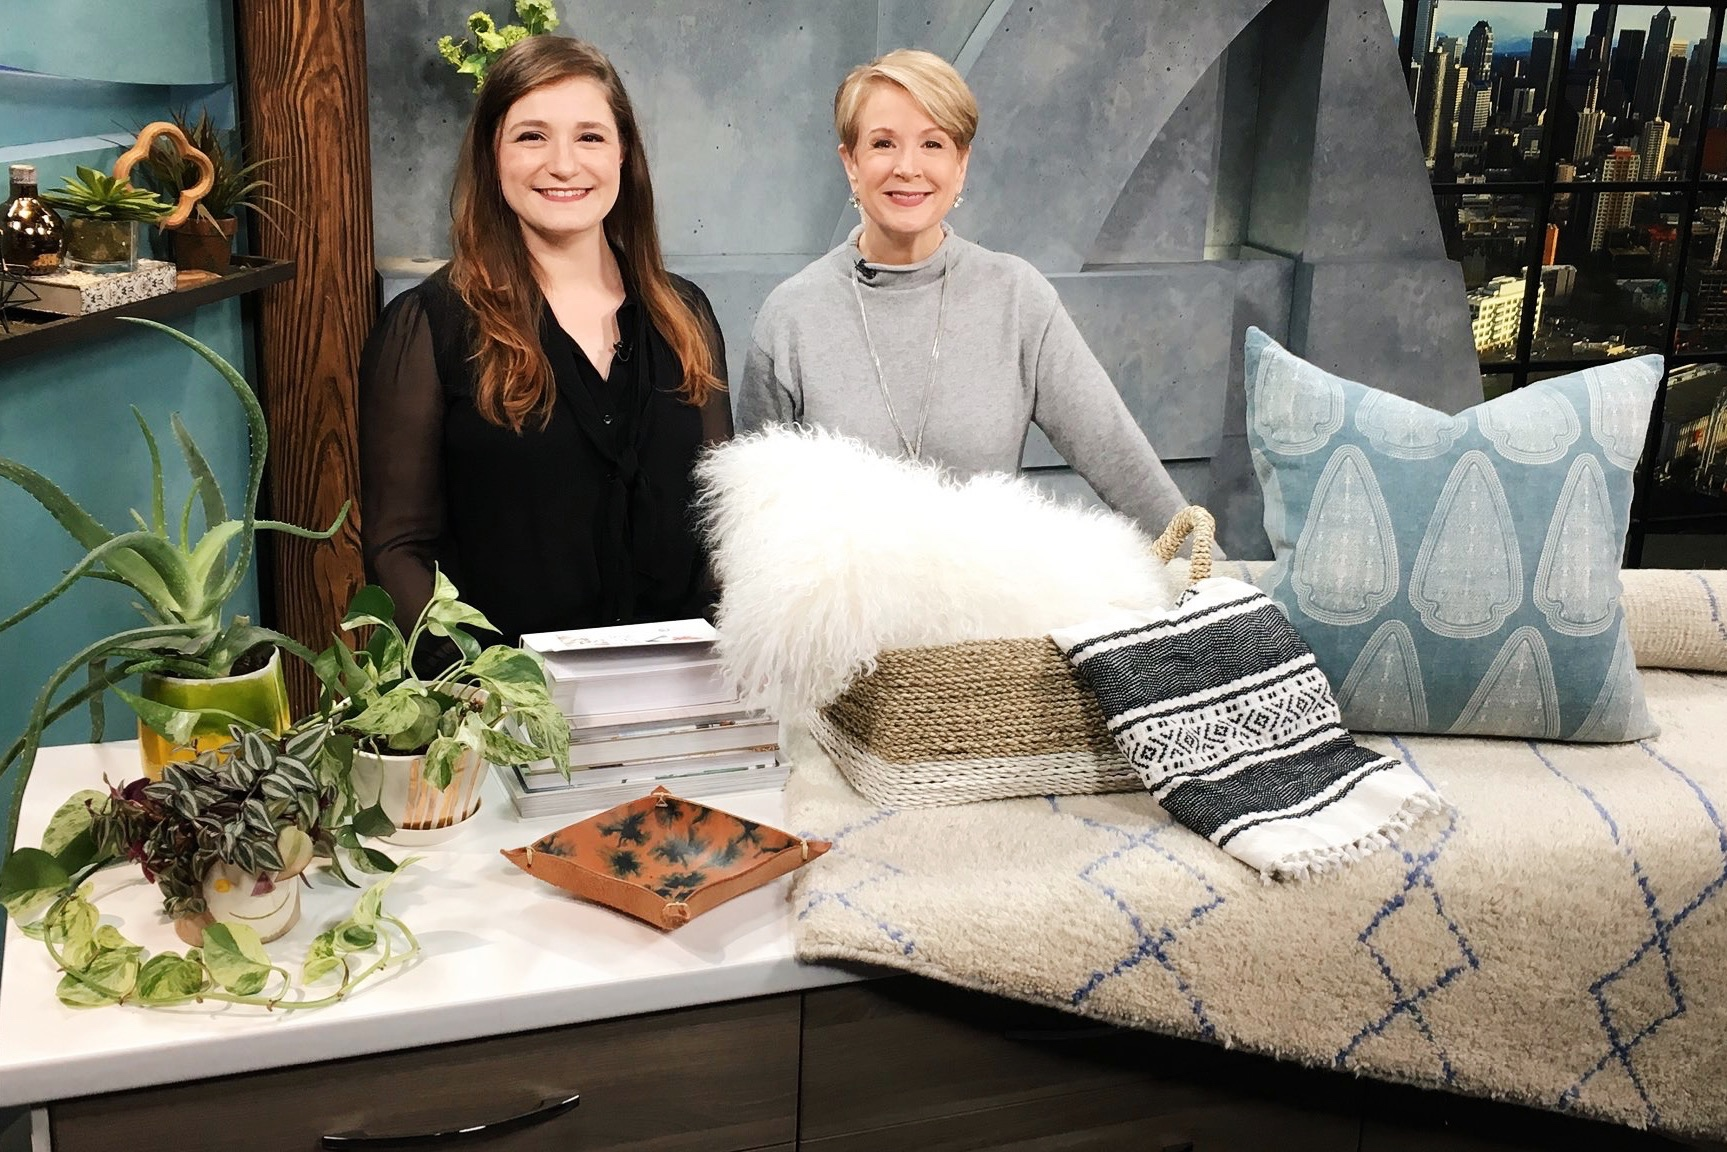 home decor styling tips to refresh your home on New Day Northwest by @jojotastic.